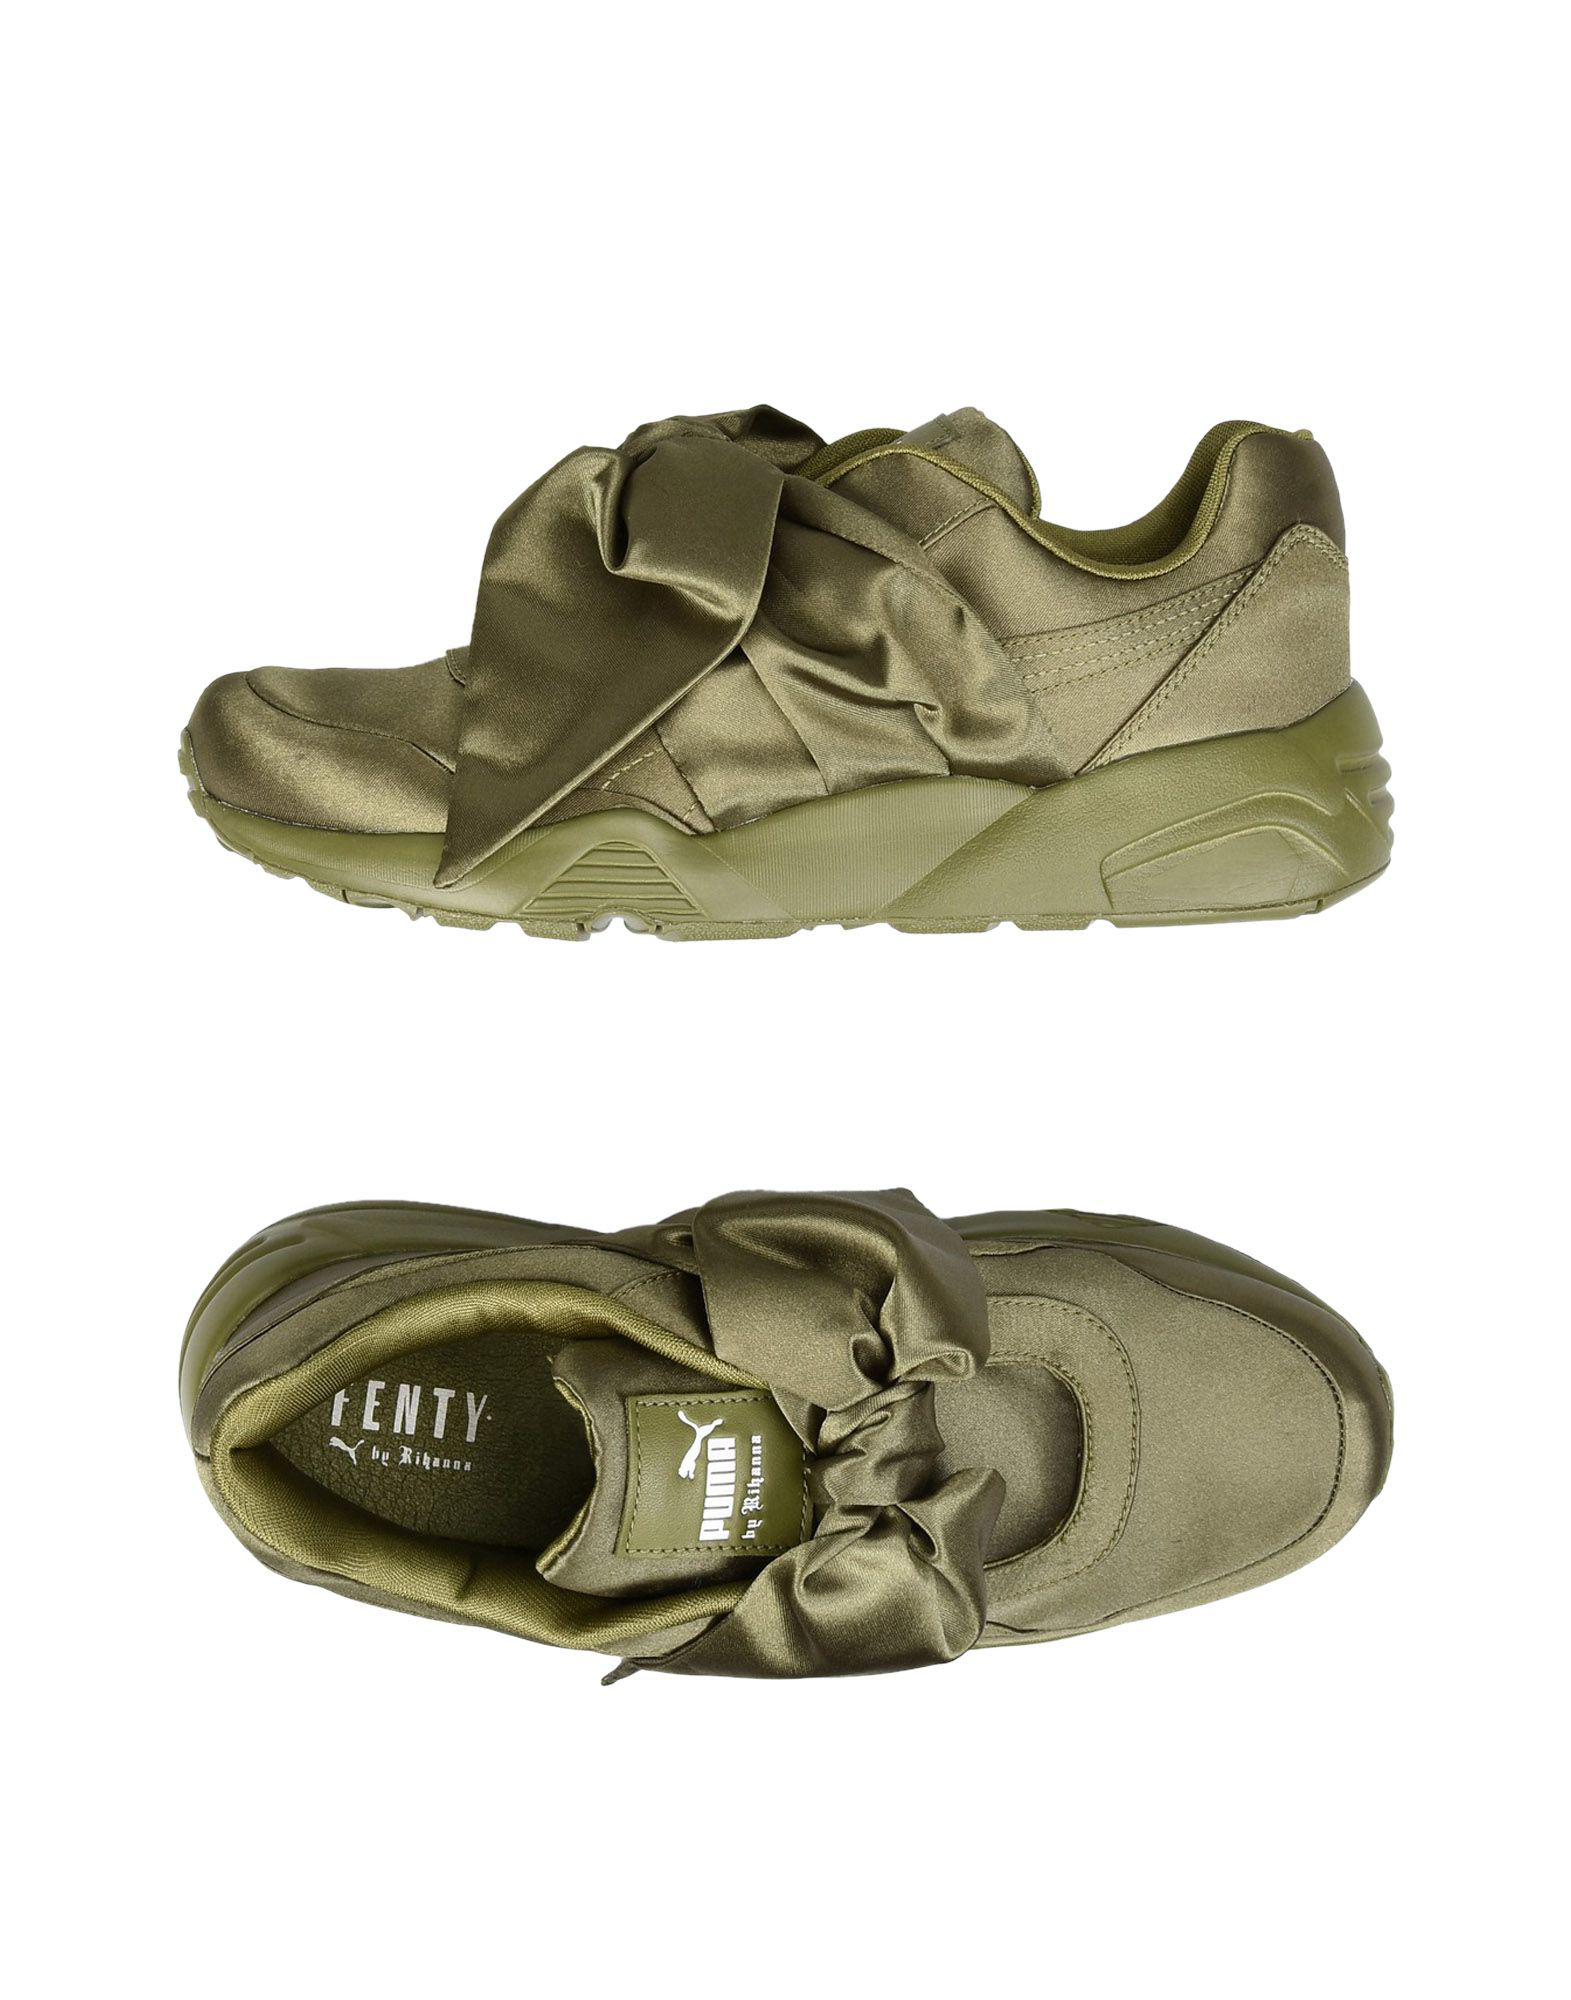 9507062f2fc238 Fenty X Puma Sneakers In Military Green